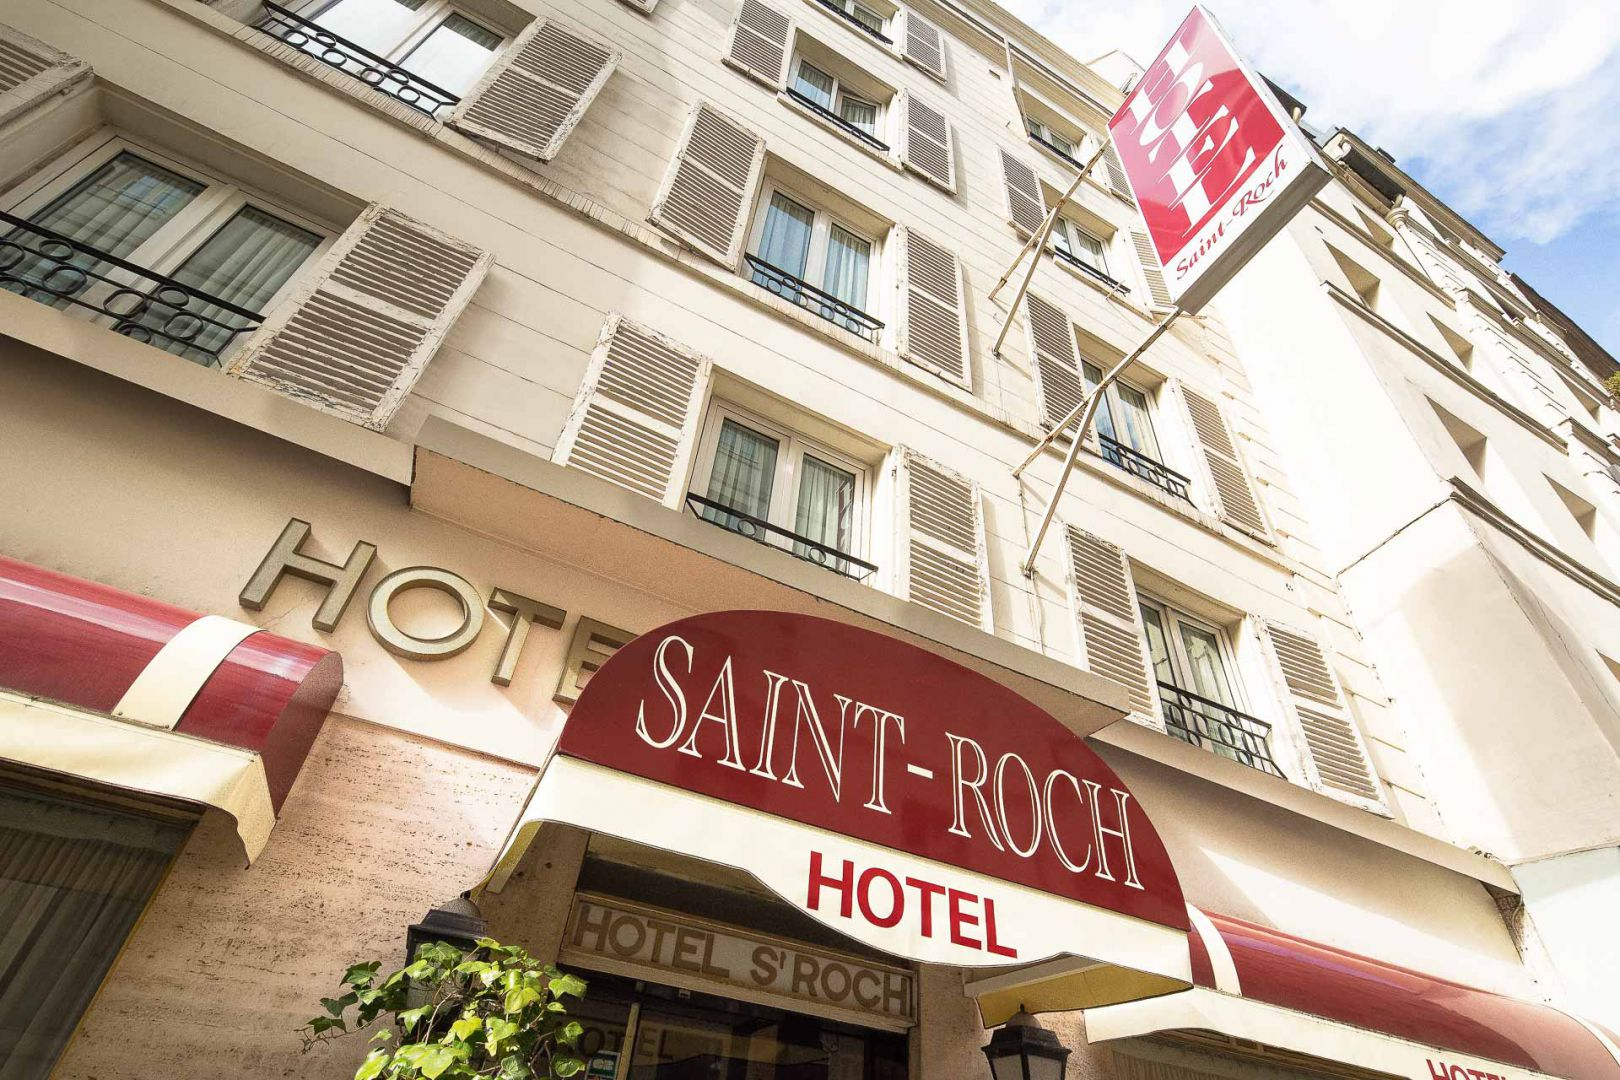 pictures hotel saint roch hotel near saint roch 39 s church. Black Bedroom Furniture Sets. Home Design Ideas